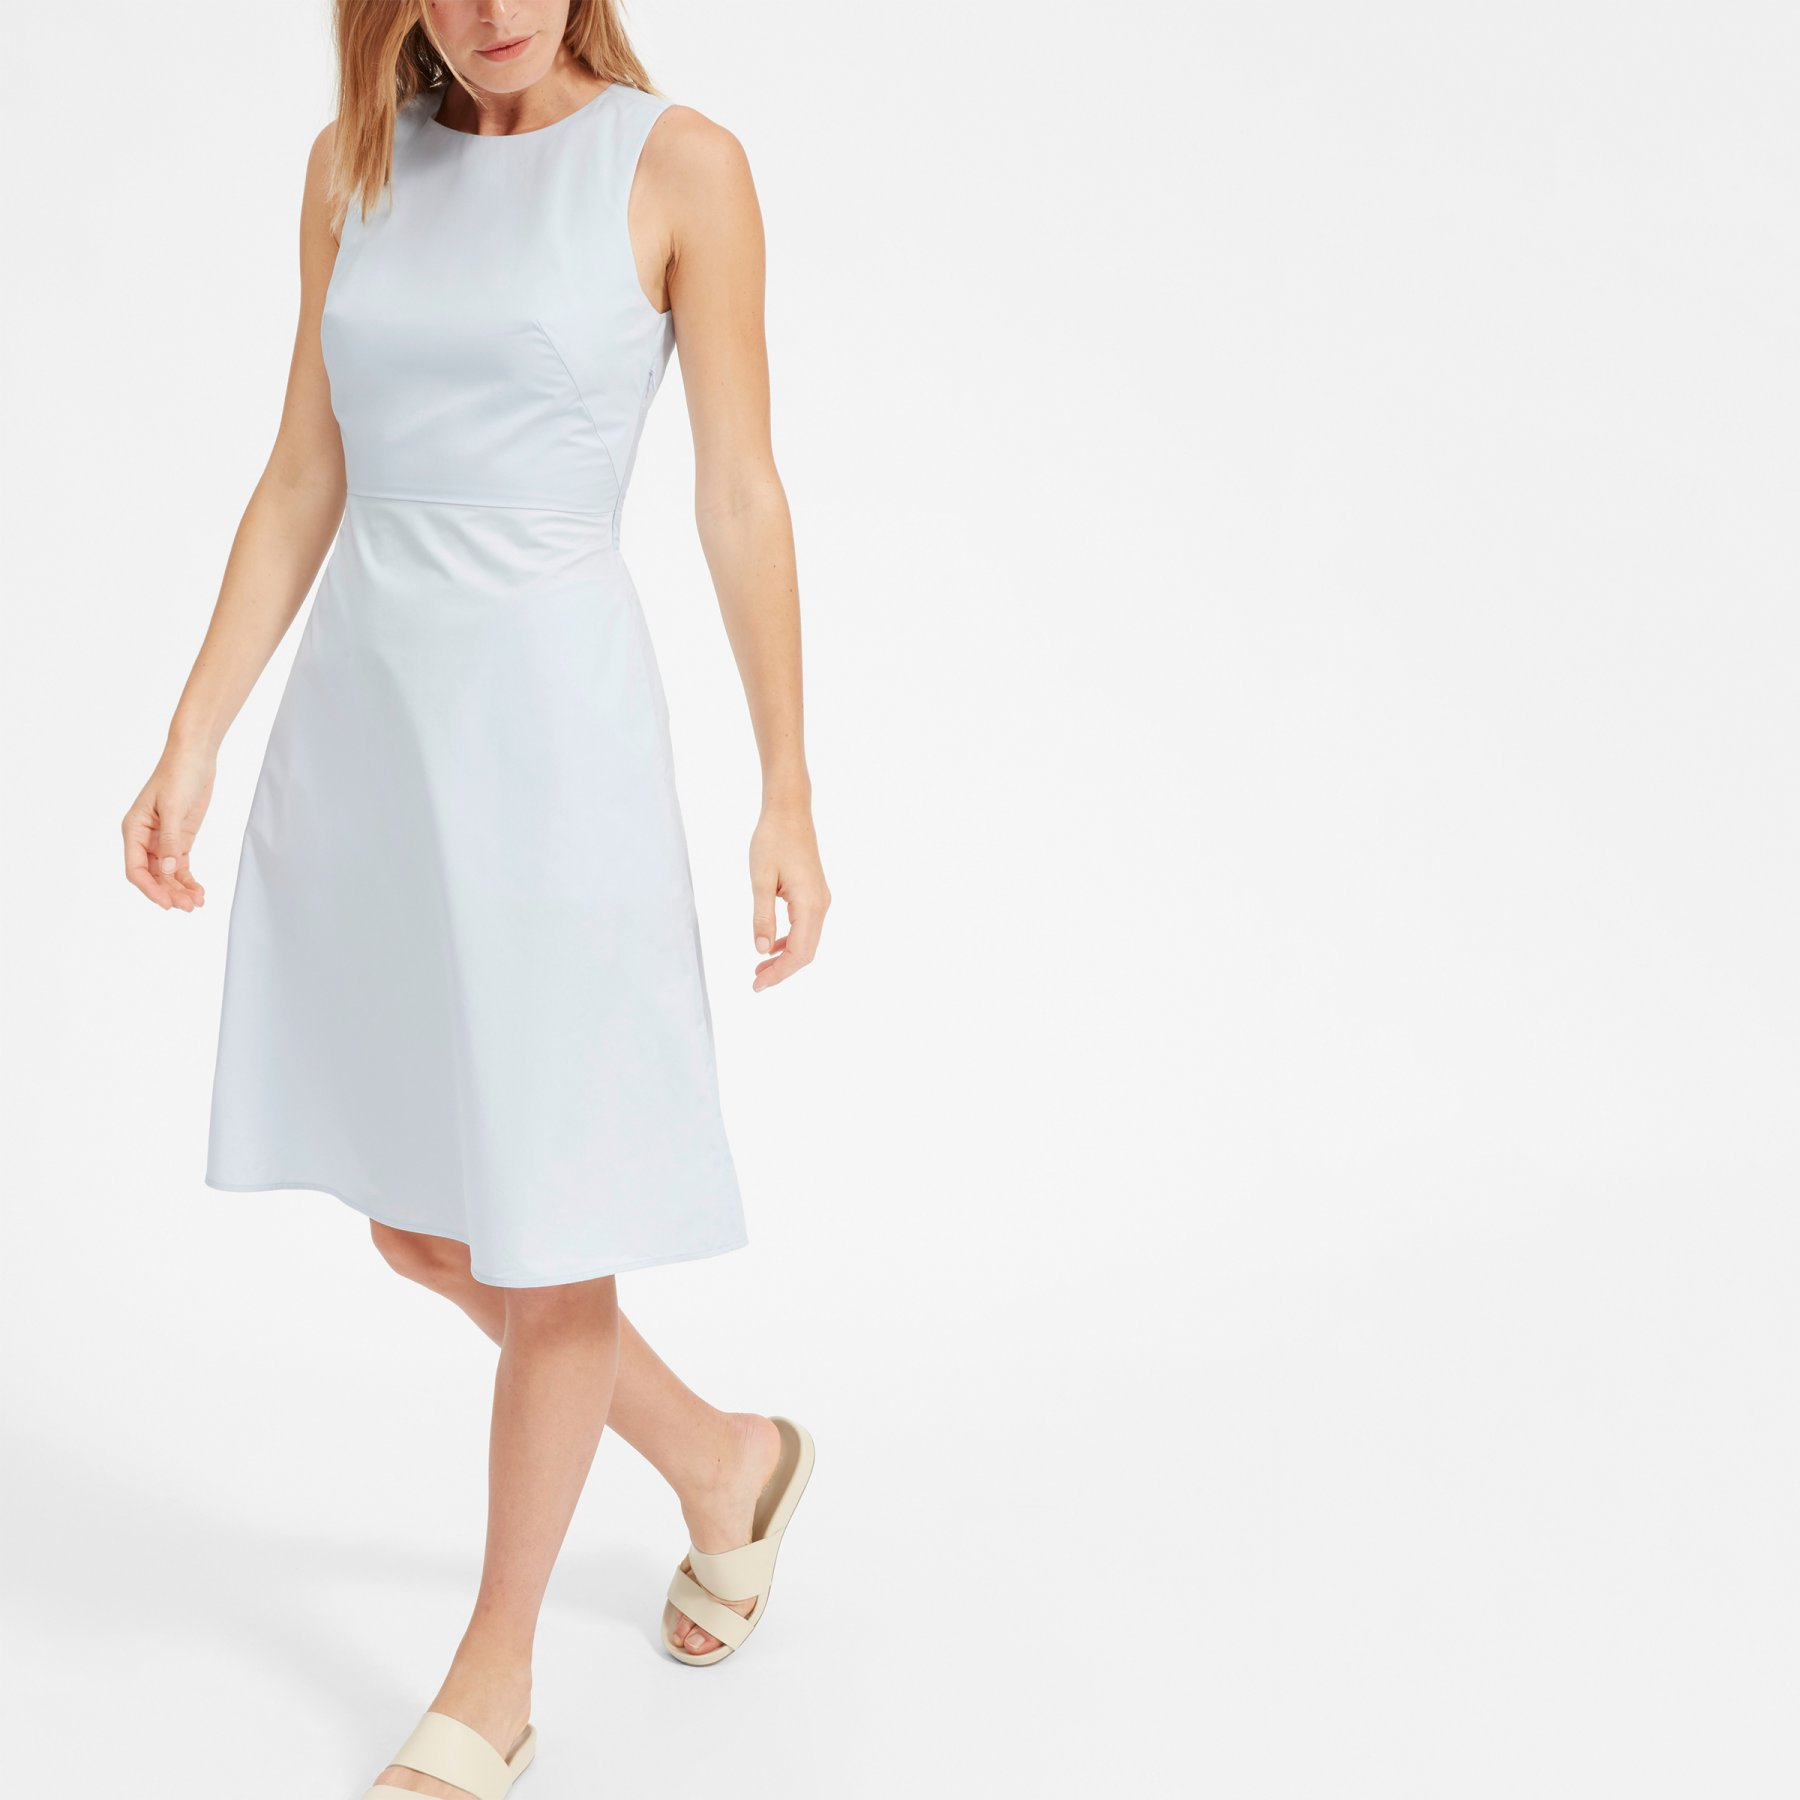 The Clean Cotton Twist Back Dress by Everlane